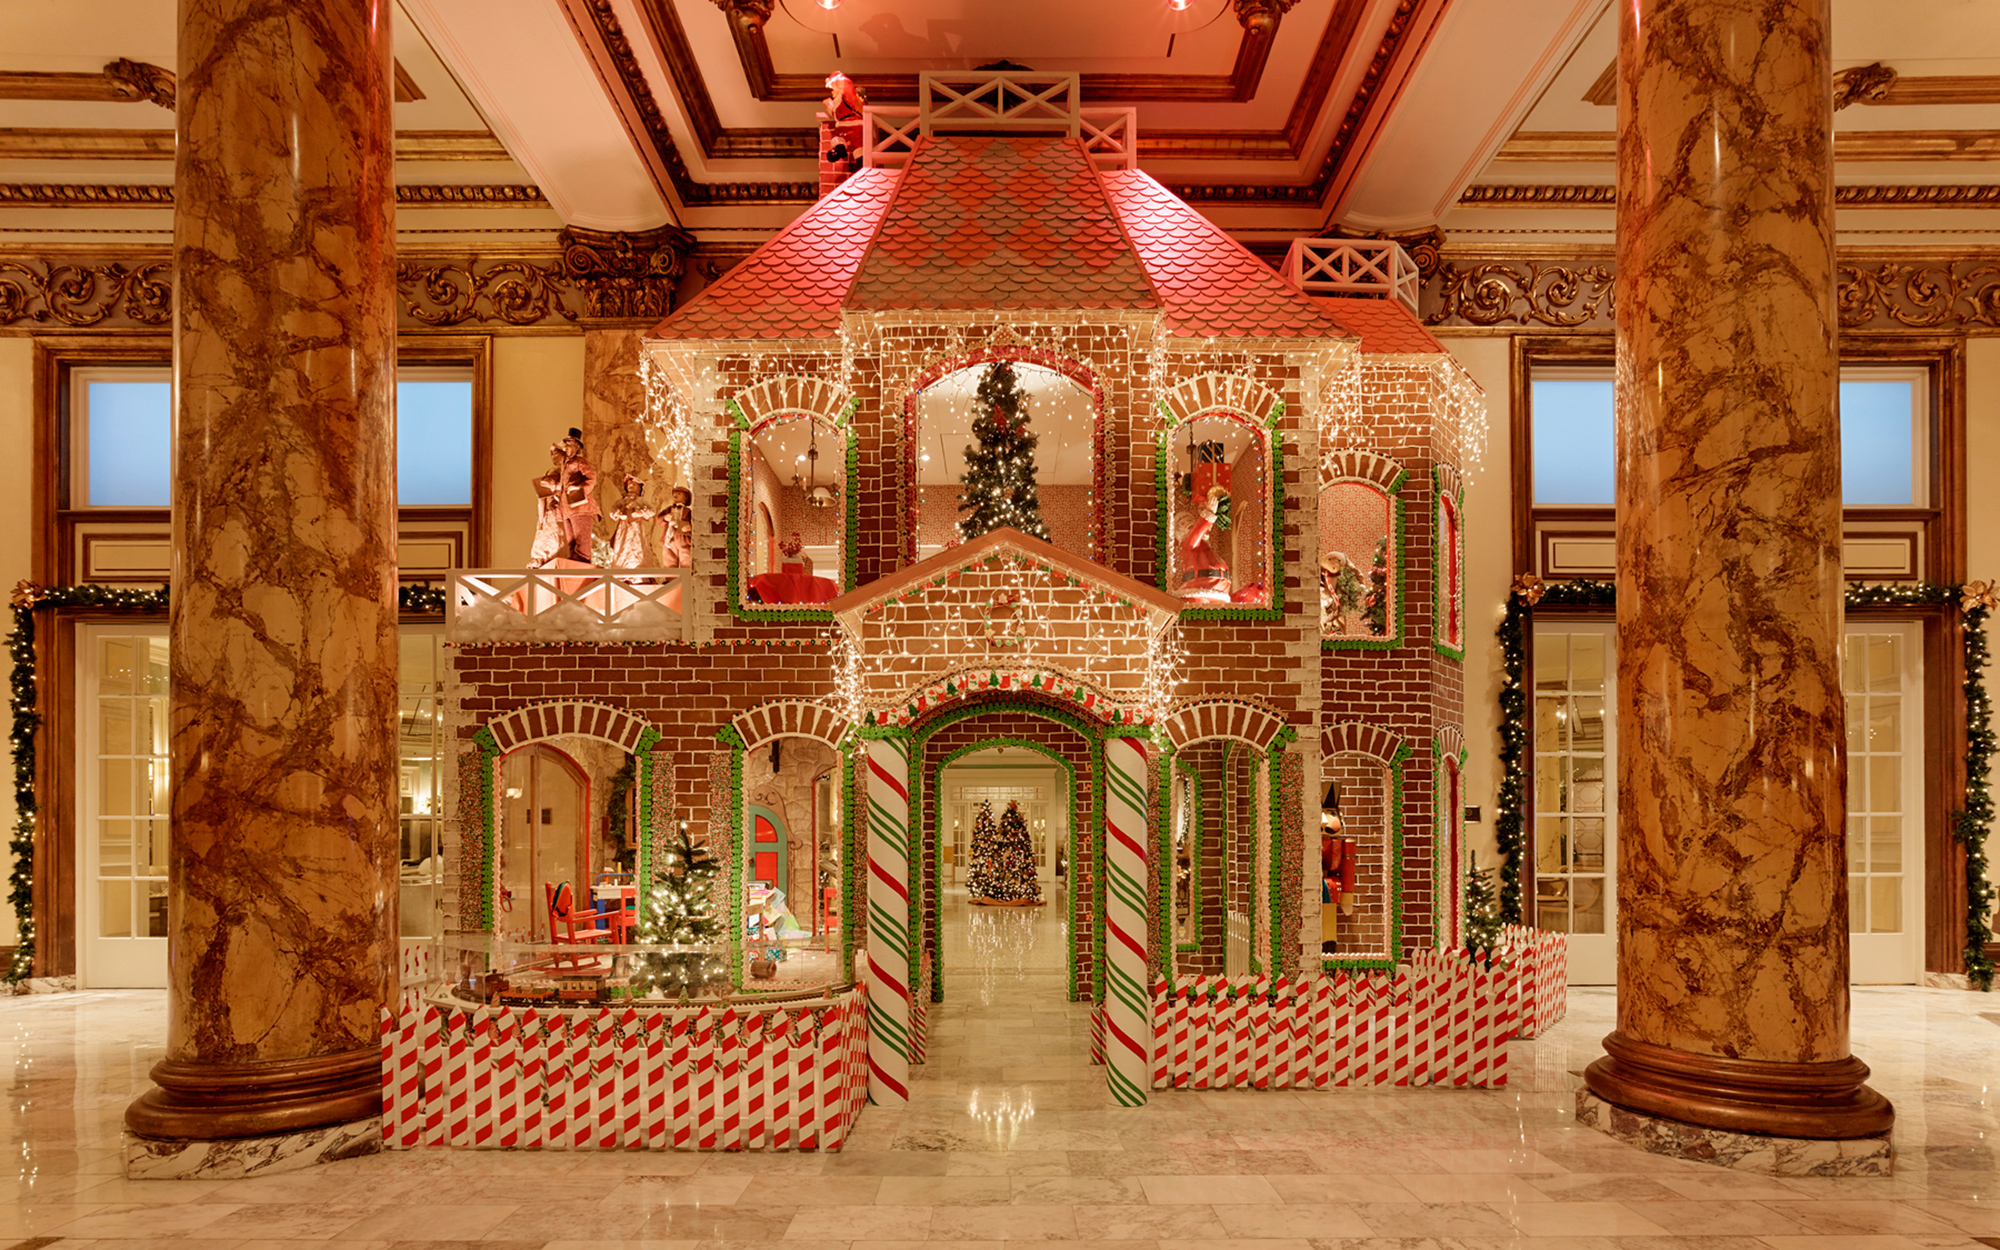 The Best Hotel Gingerbread Houses: Fairmont San Francisco, California